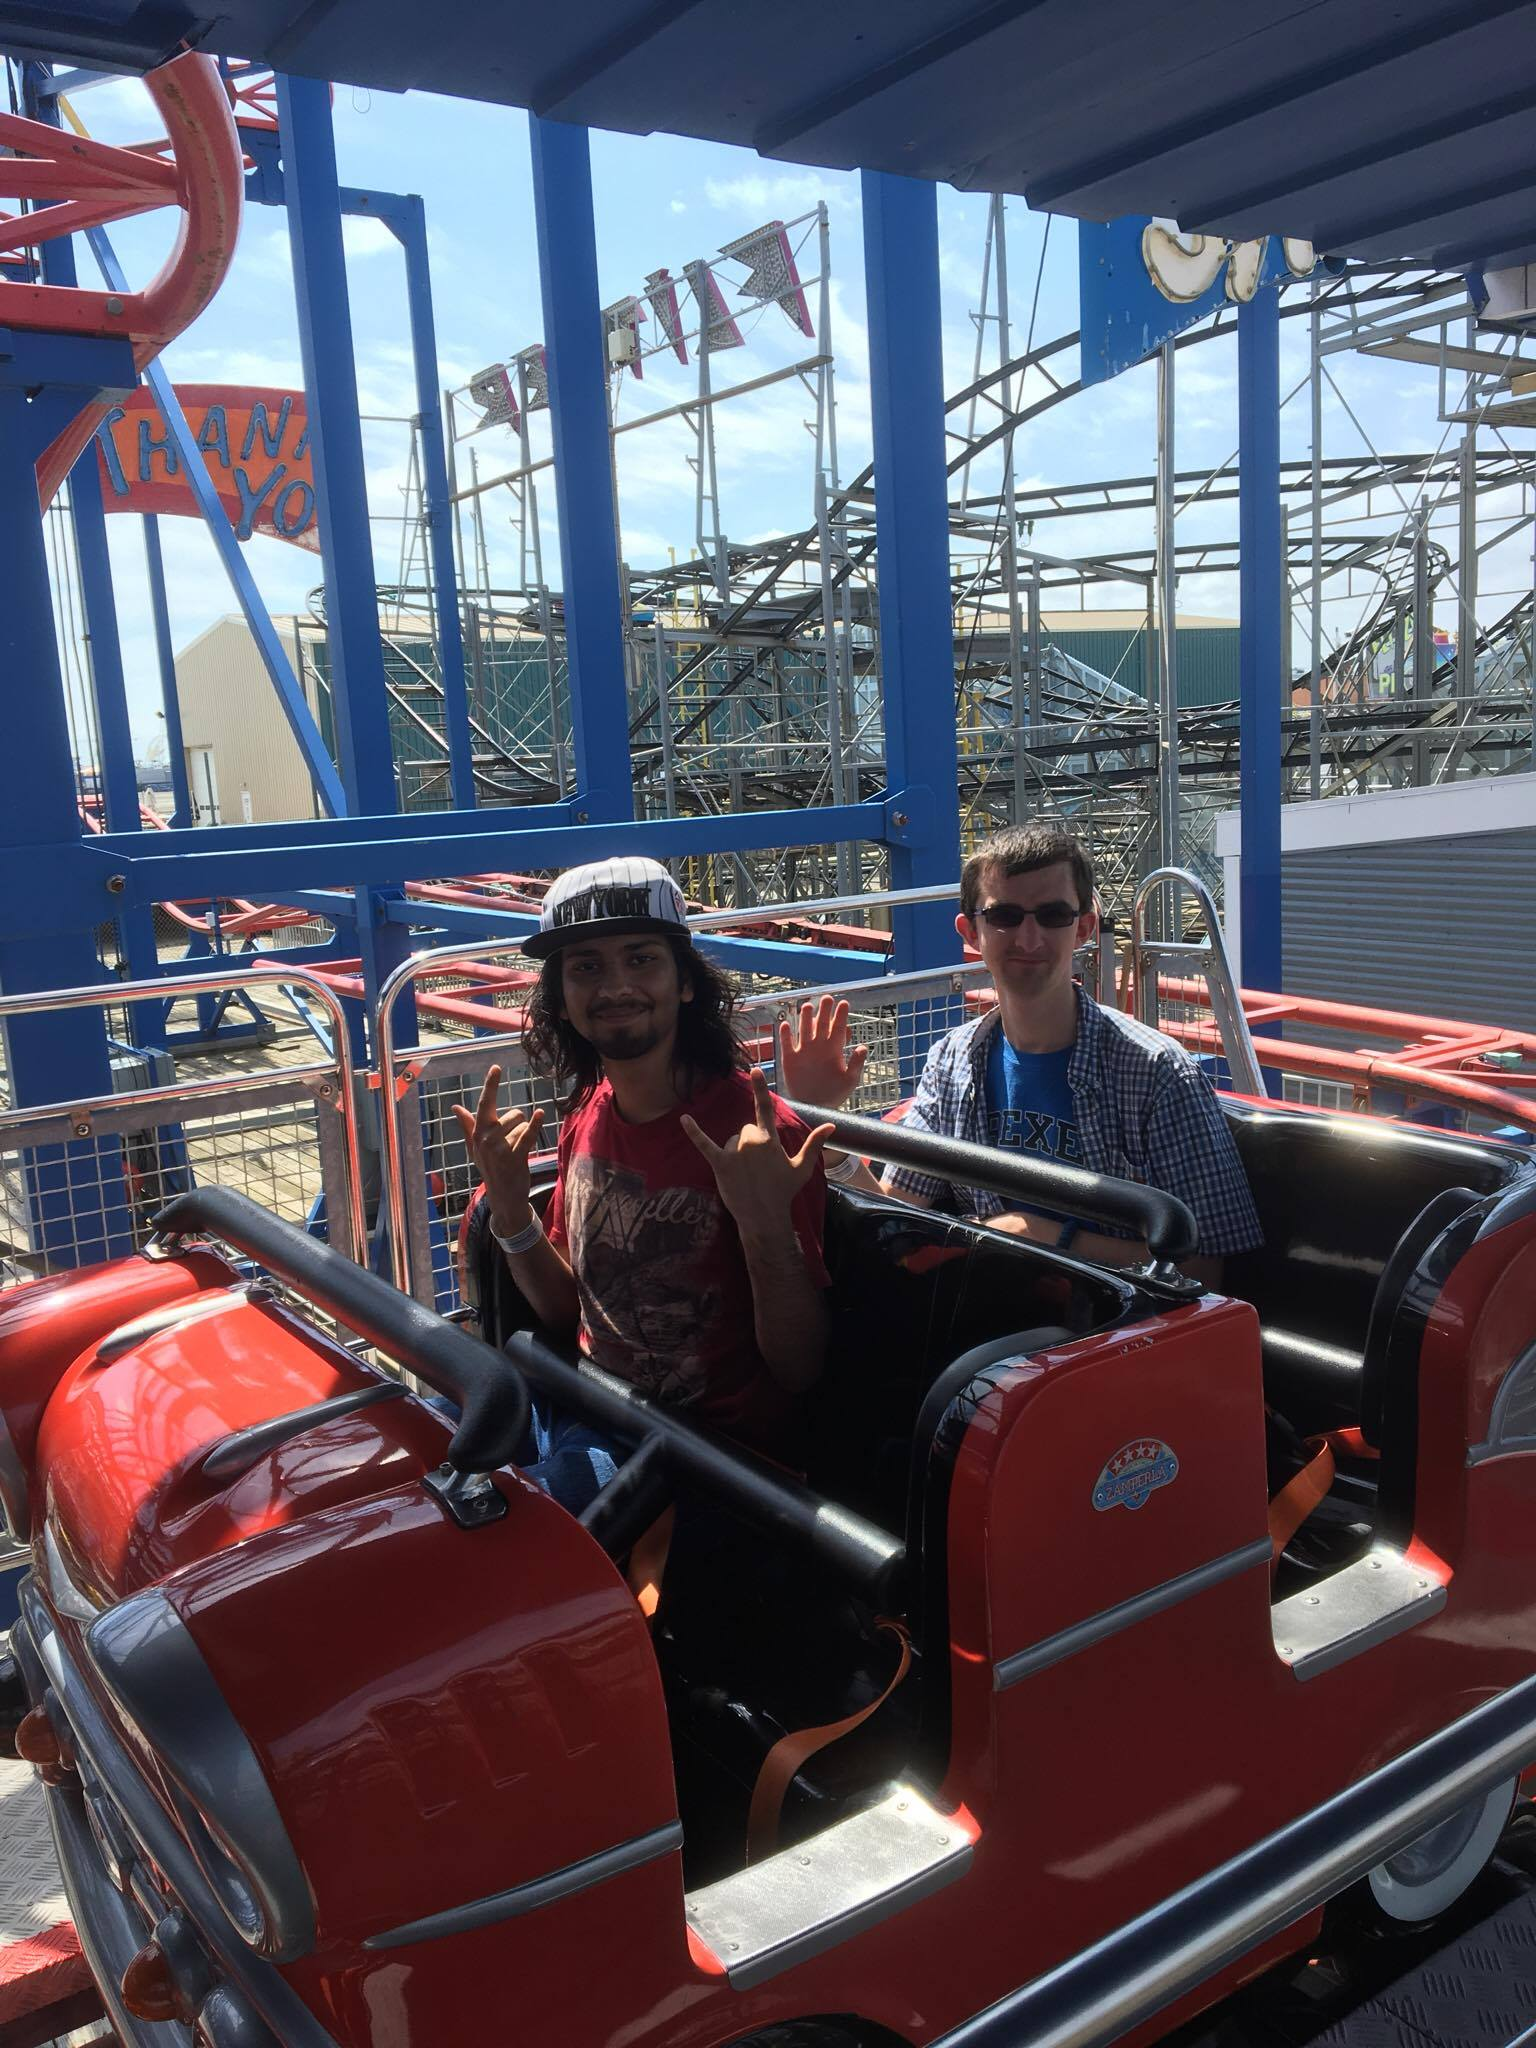 We love our rollercoasters!